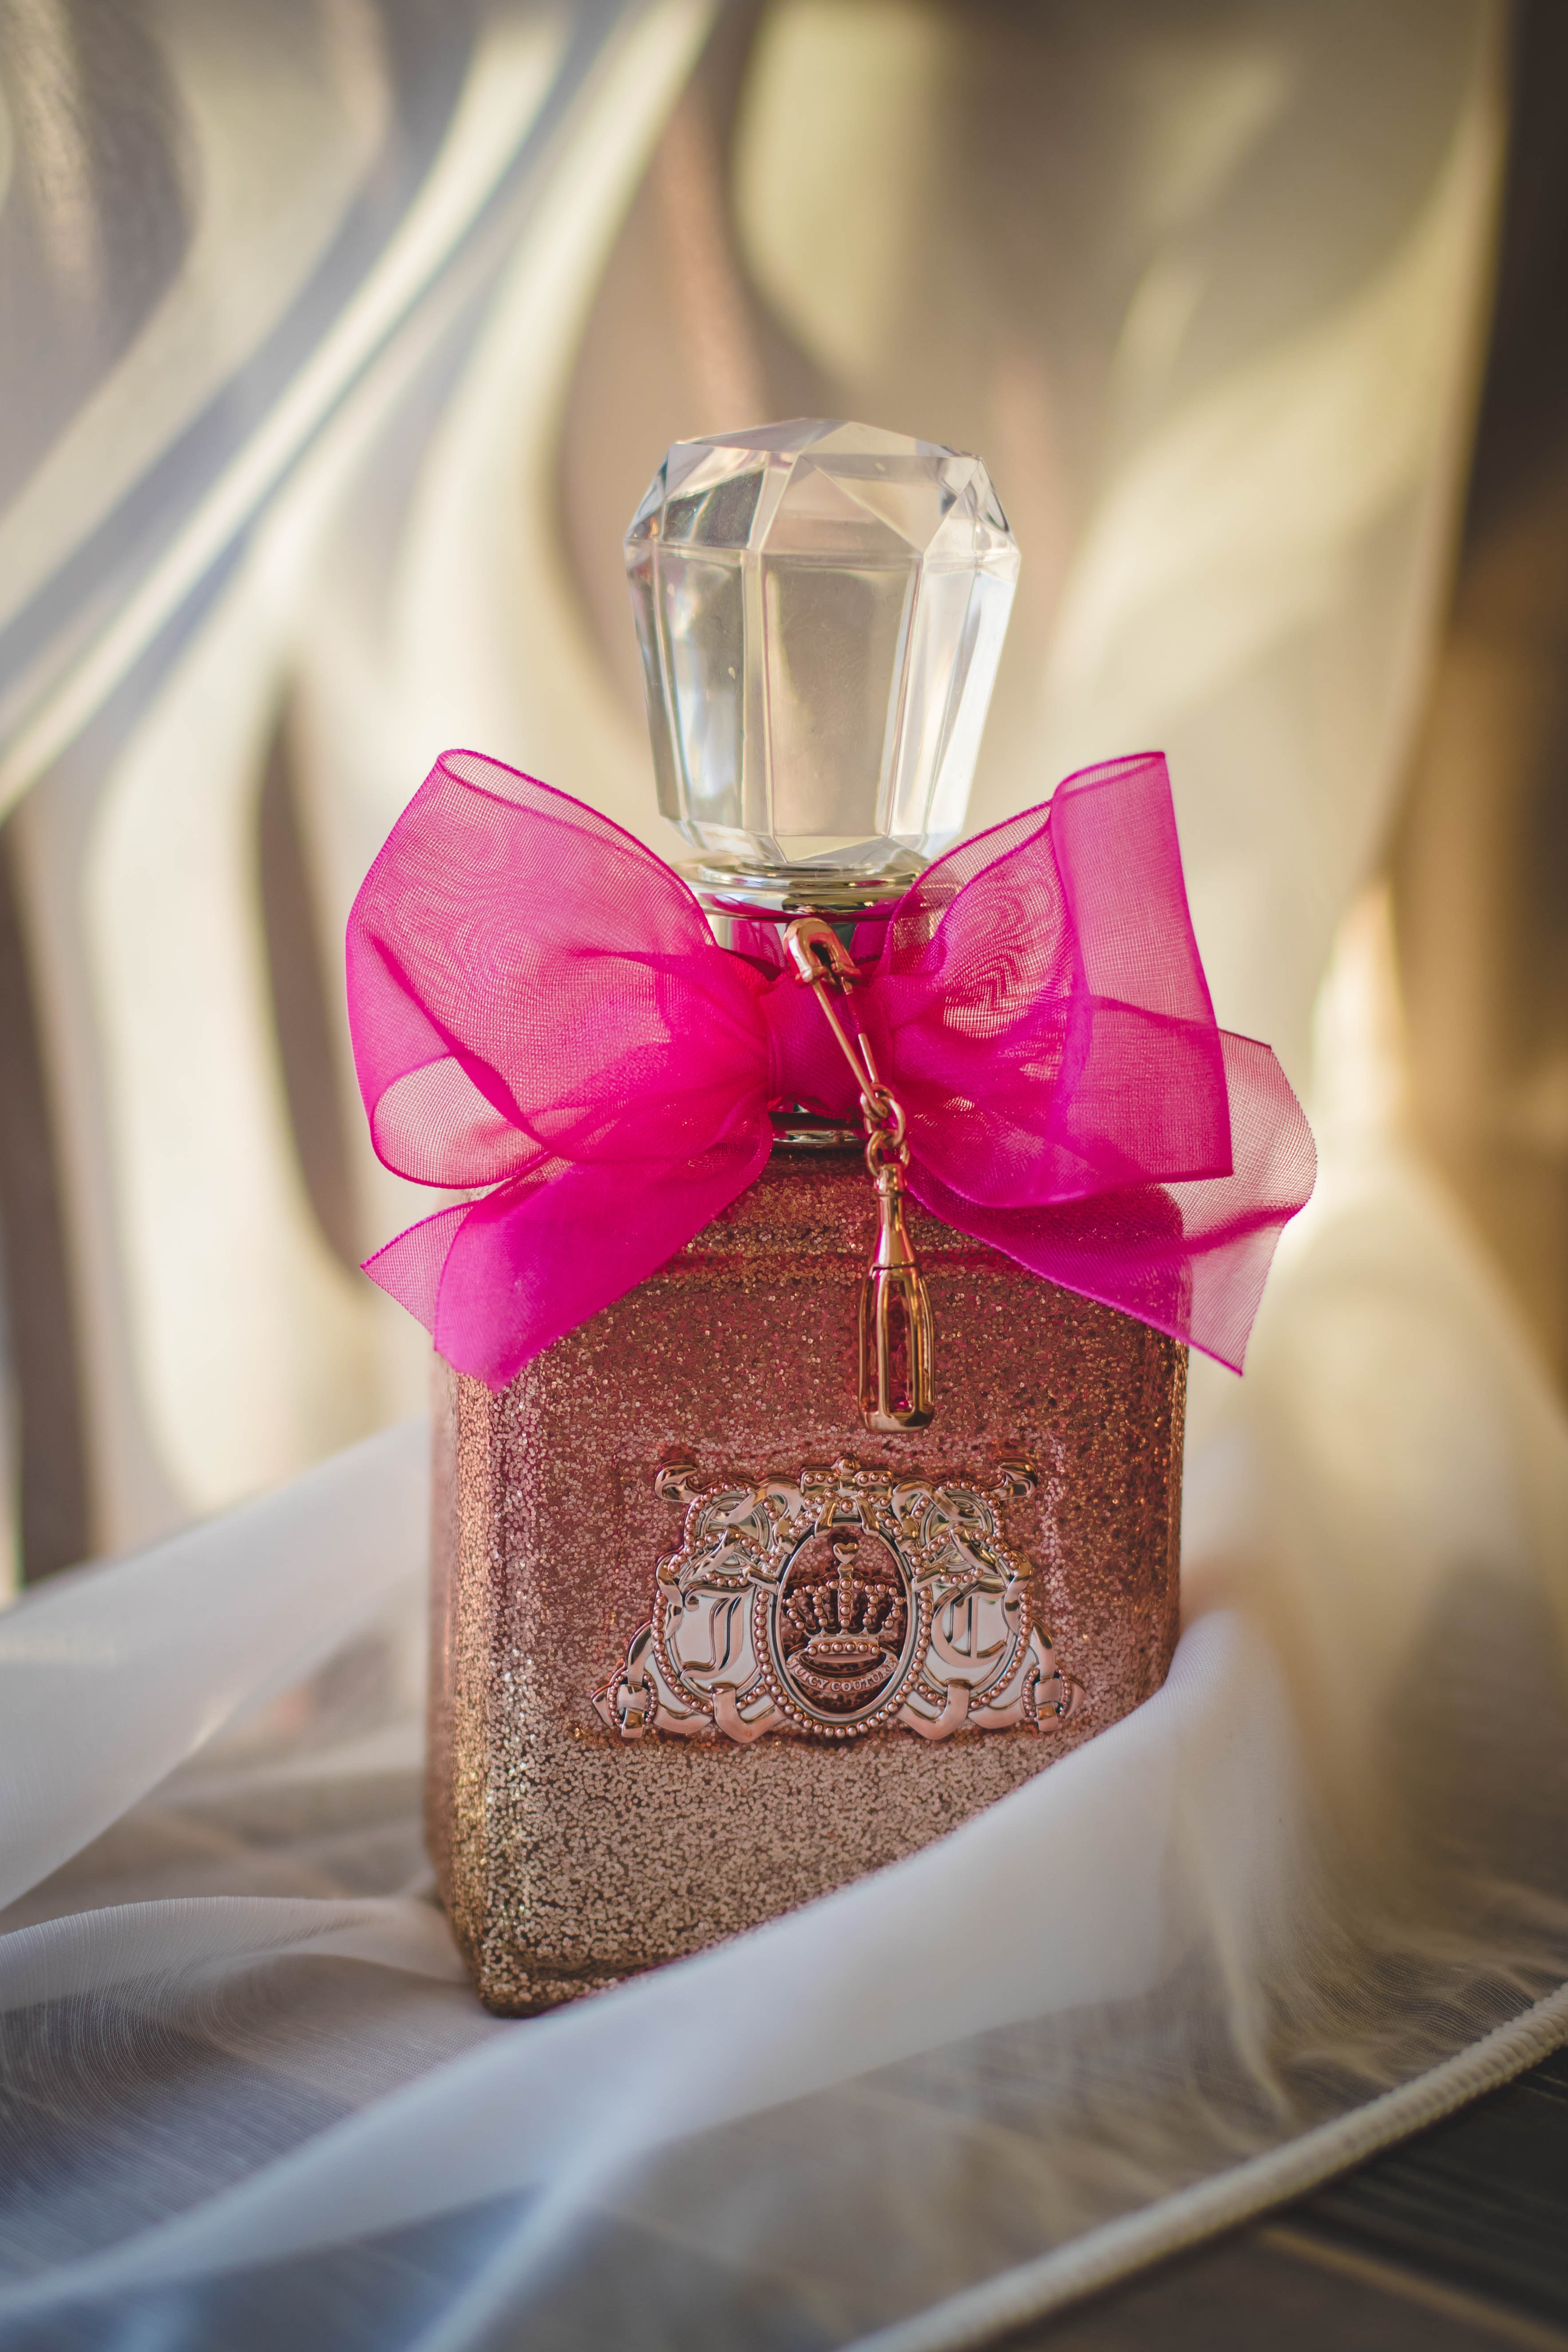 Close Photograph of Glitter Pink Fragrance Bottle With Red Ribbon, Bottle, Love, Scent, Romance, HQ Photo